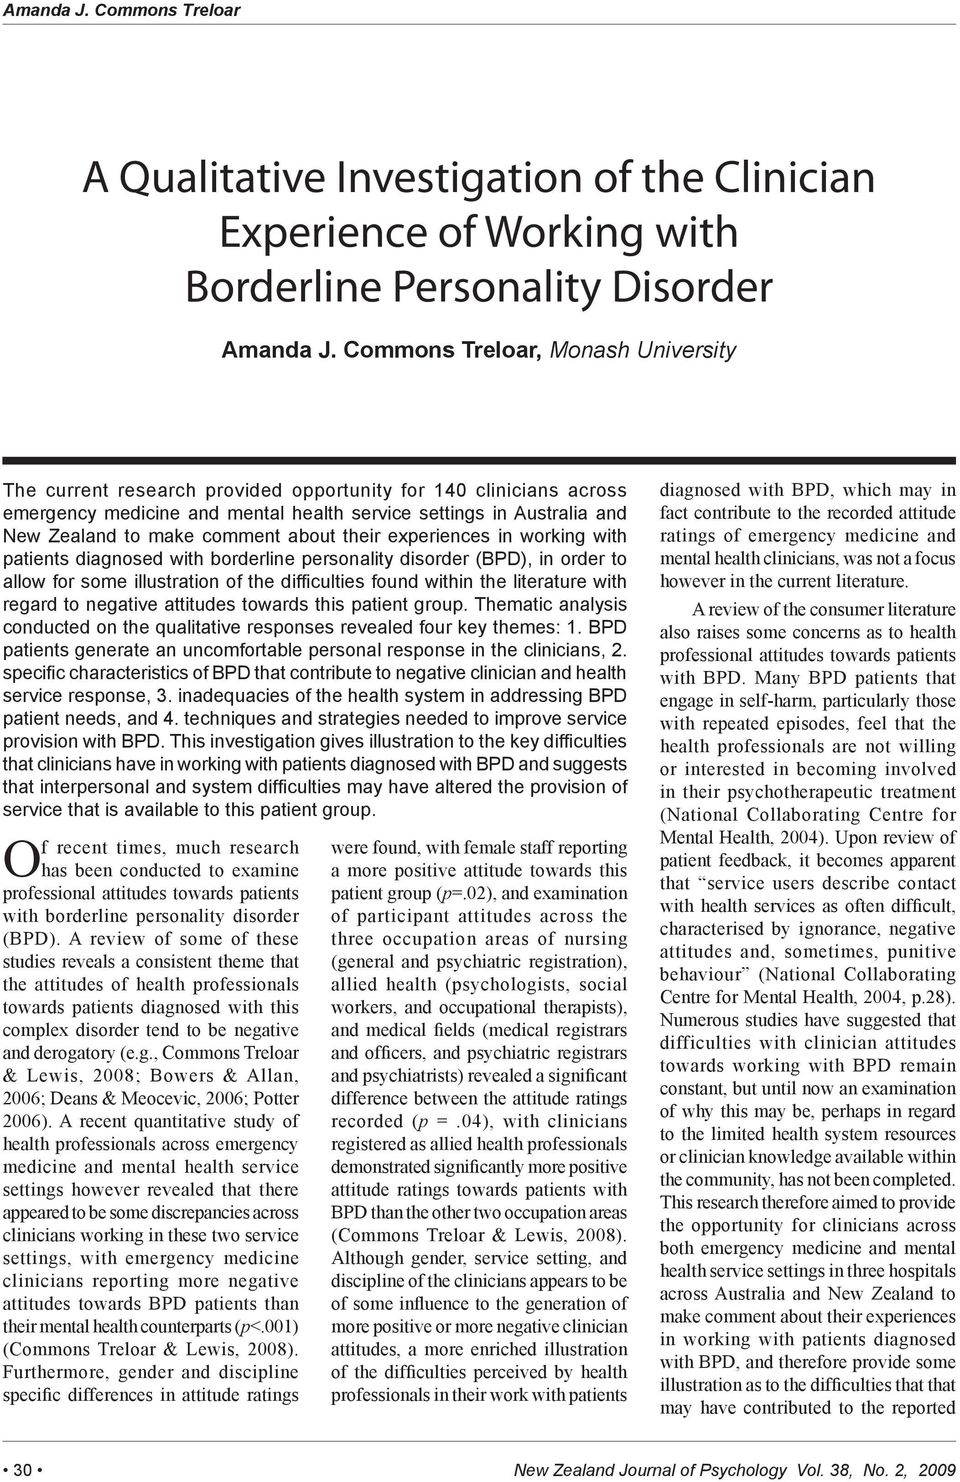 comment about their experiences in working with patients diagnosed with borderline personality disorder (BPD), in order to allow for some illustration of the difficulties found within the literature